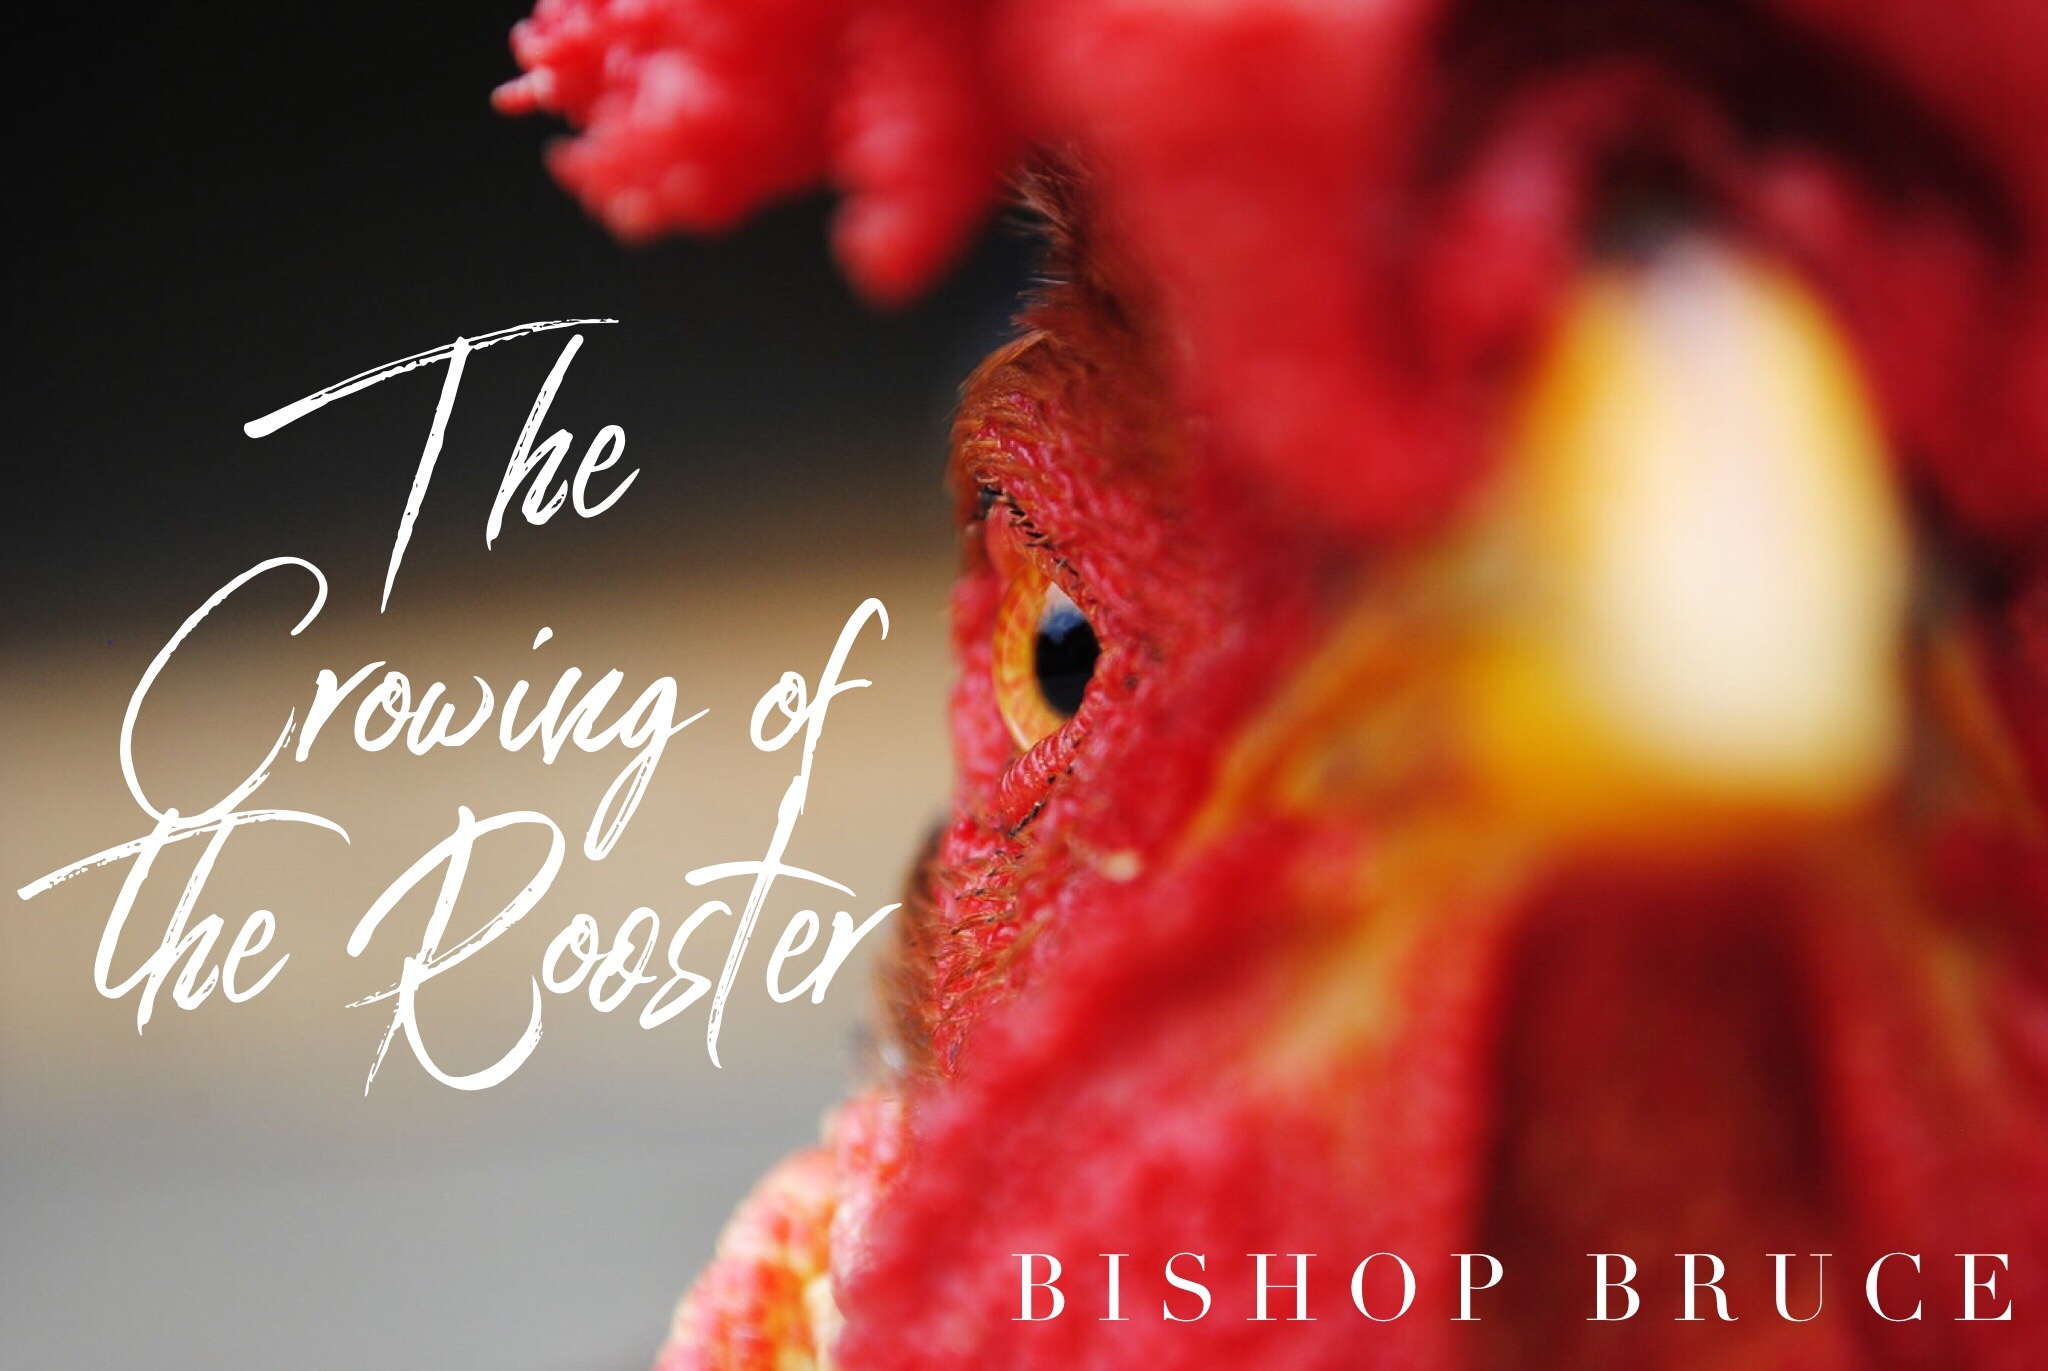 The Crowing of the Rooster